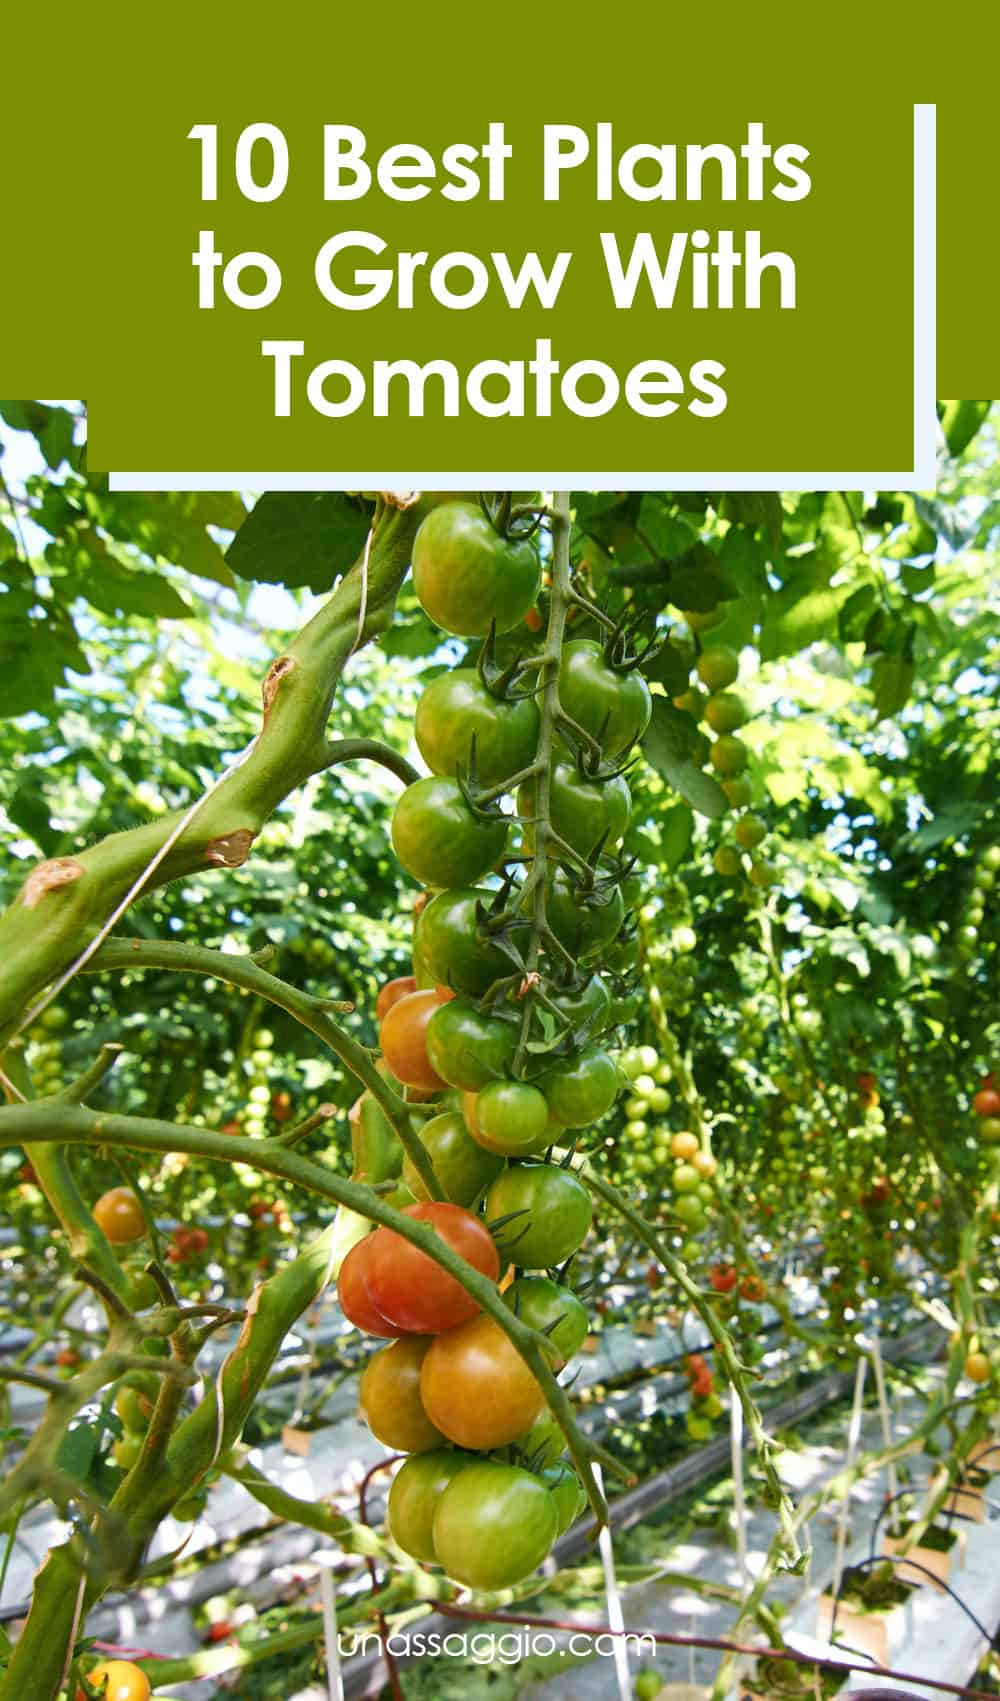 Tomato Companion Plants: 10 Best Plants to Grow With Tomatoes